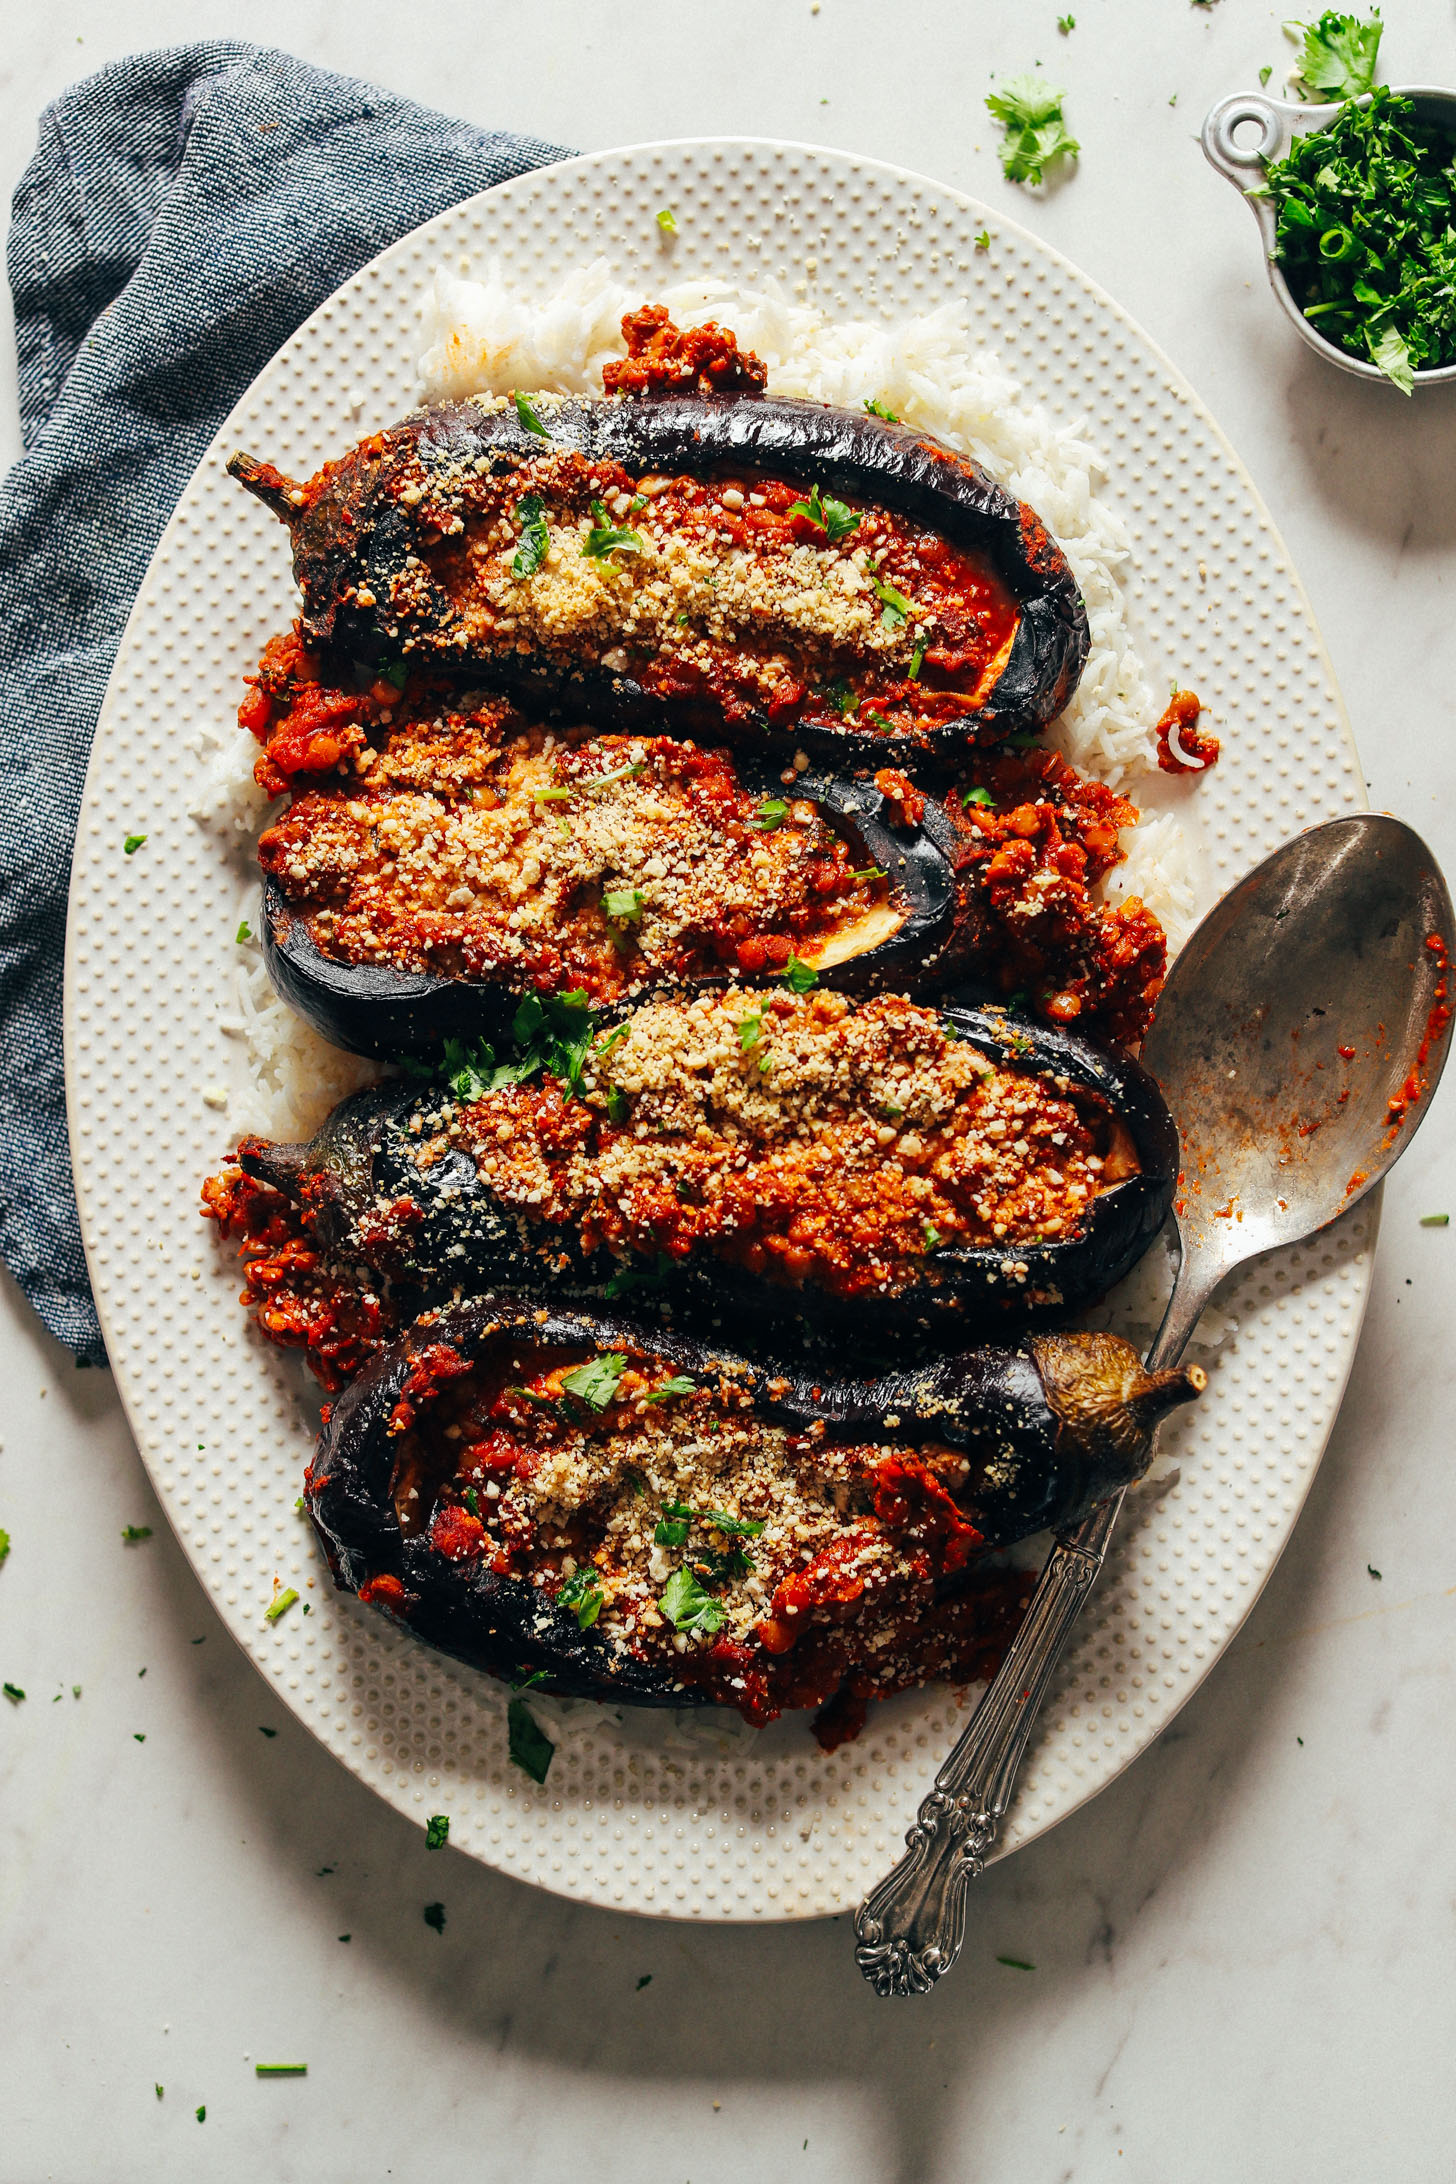 A platter full of Moroccan Lentil-Stuffed Eggplant on a bed of basmati rice for the perfect plant-based meal